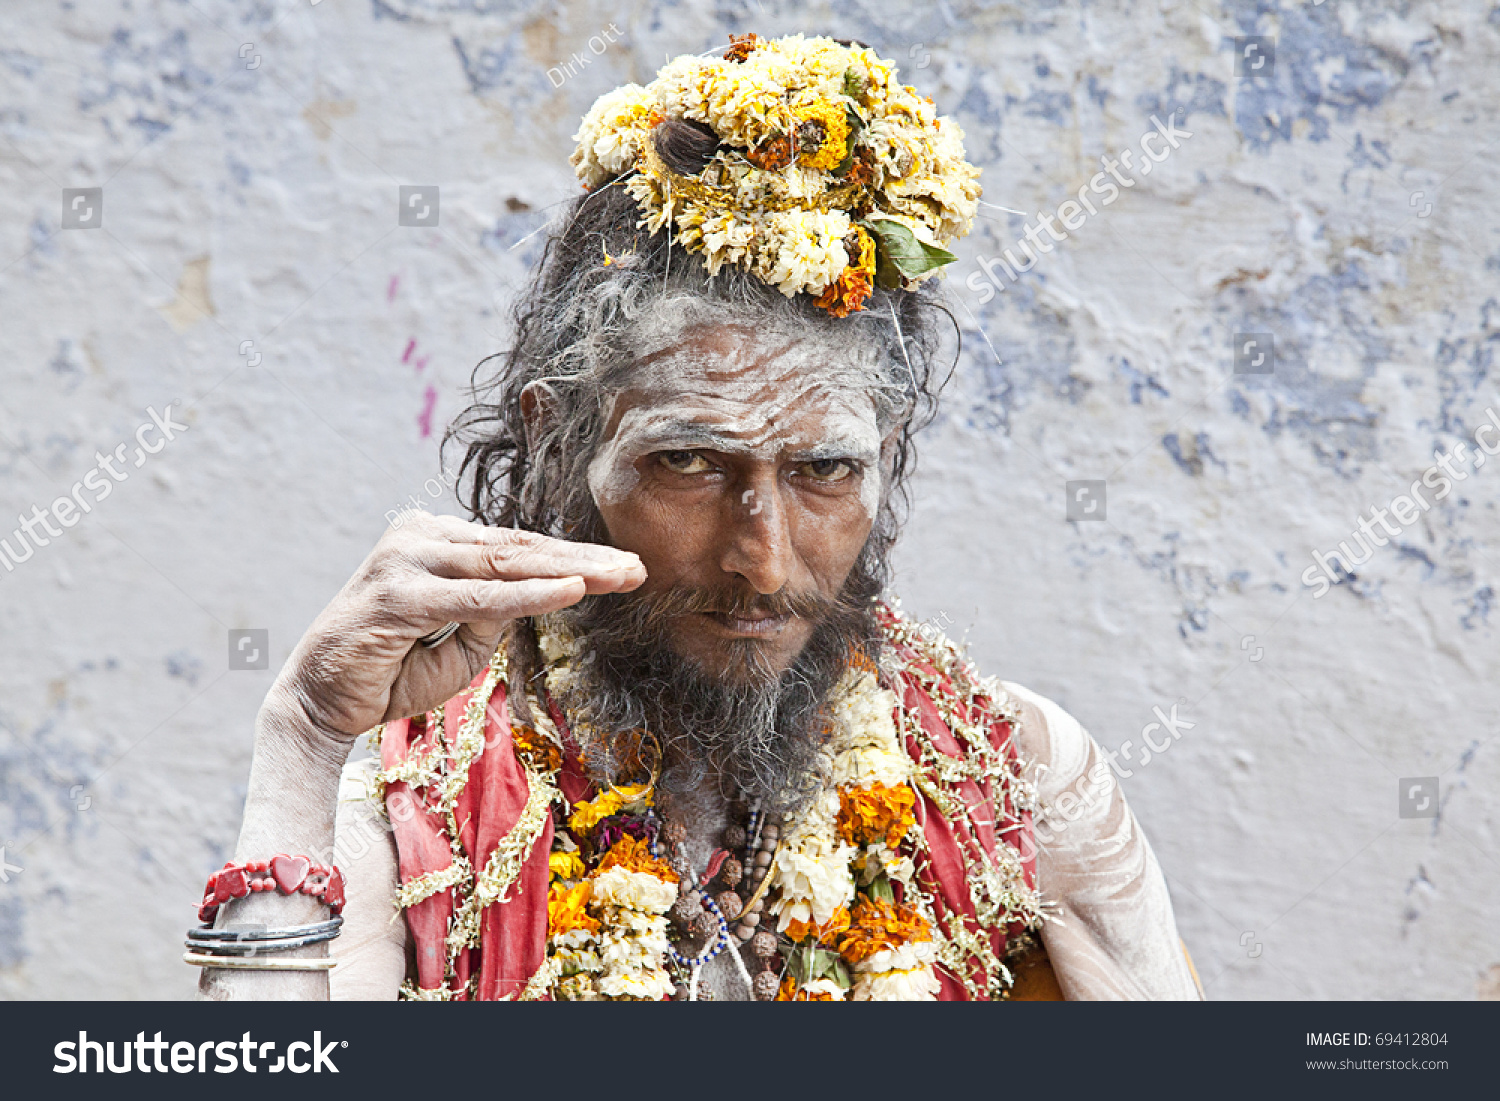 Sadhus Are Ascetic Practitioner Of Yoga And Or Wandering Monks Who Have Left